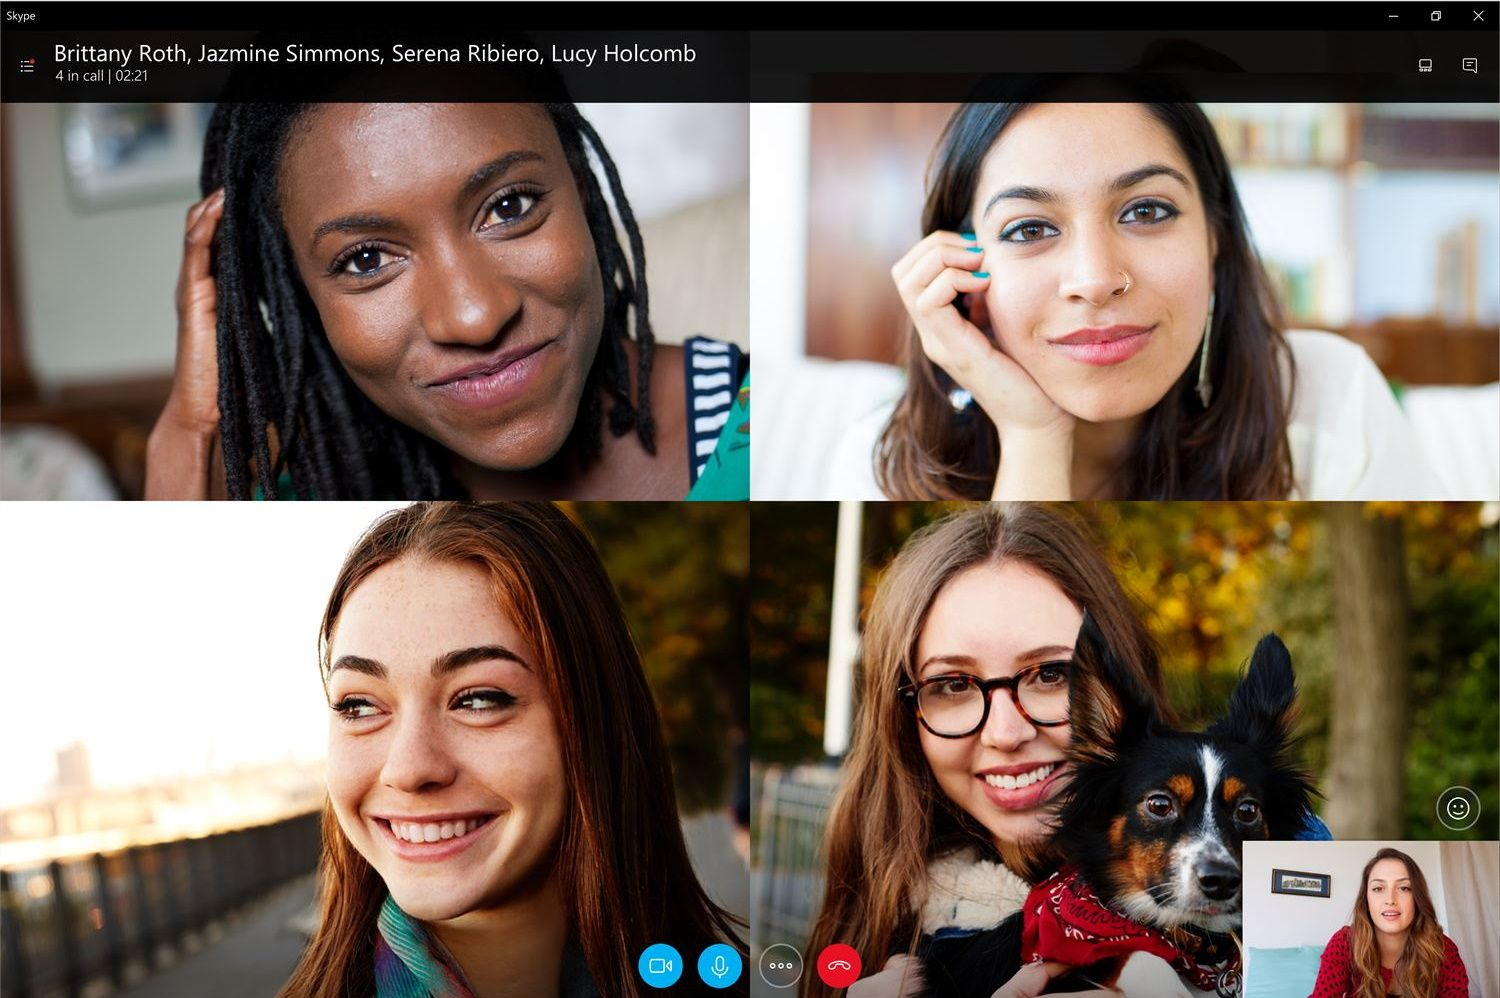 The best video chat apps to turn social distancing into